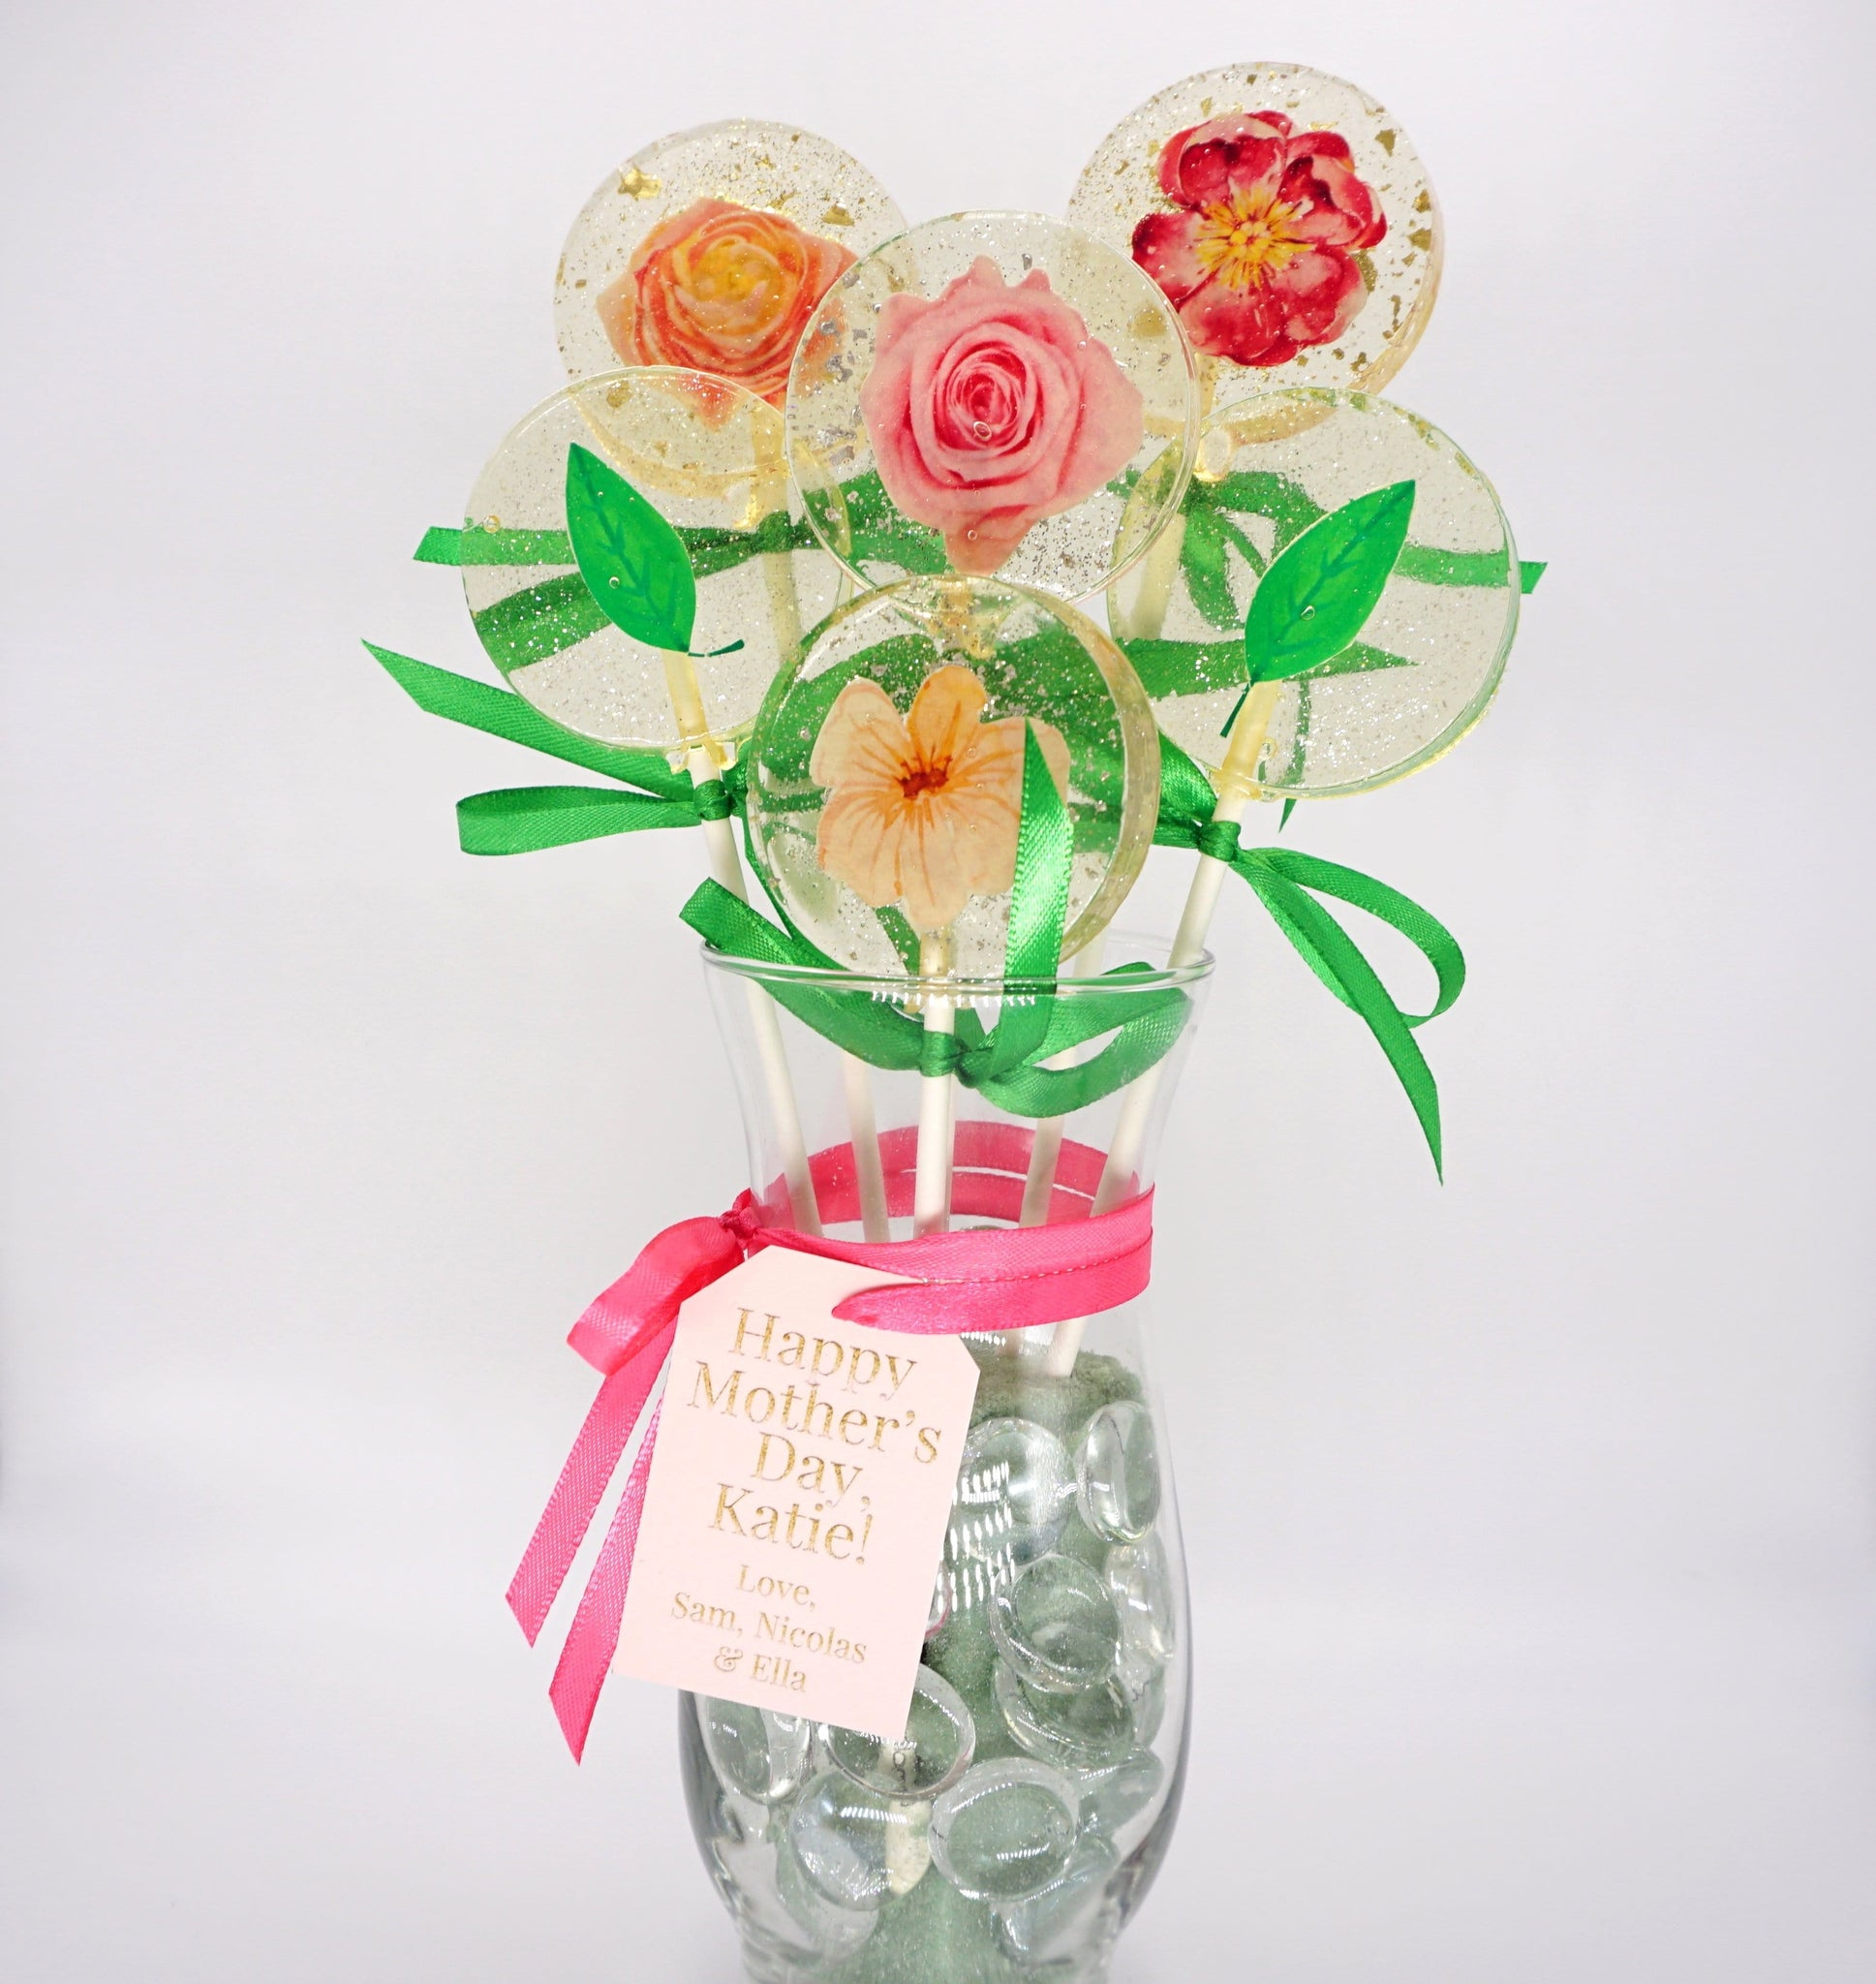 Spring Flower Lollipop Vase with Personalized Note, Mix of Flavors - Sweet Caroline Confections | The Original Sparkle Lollipops